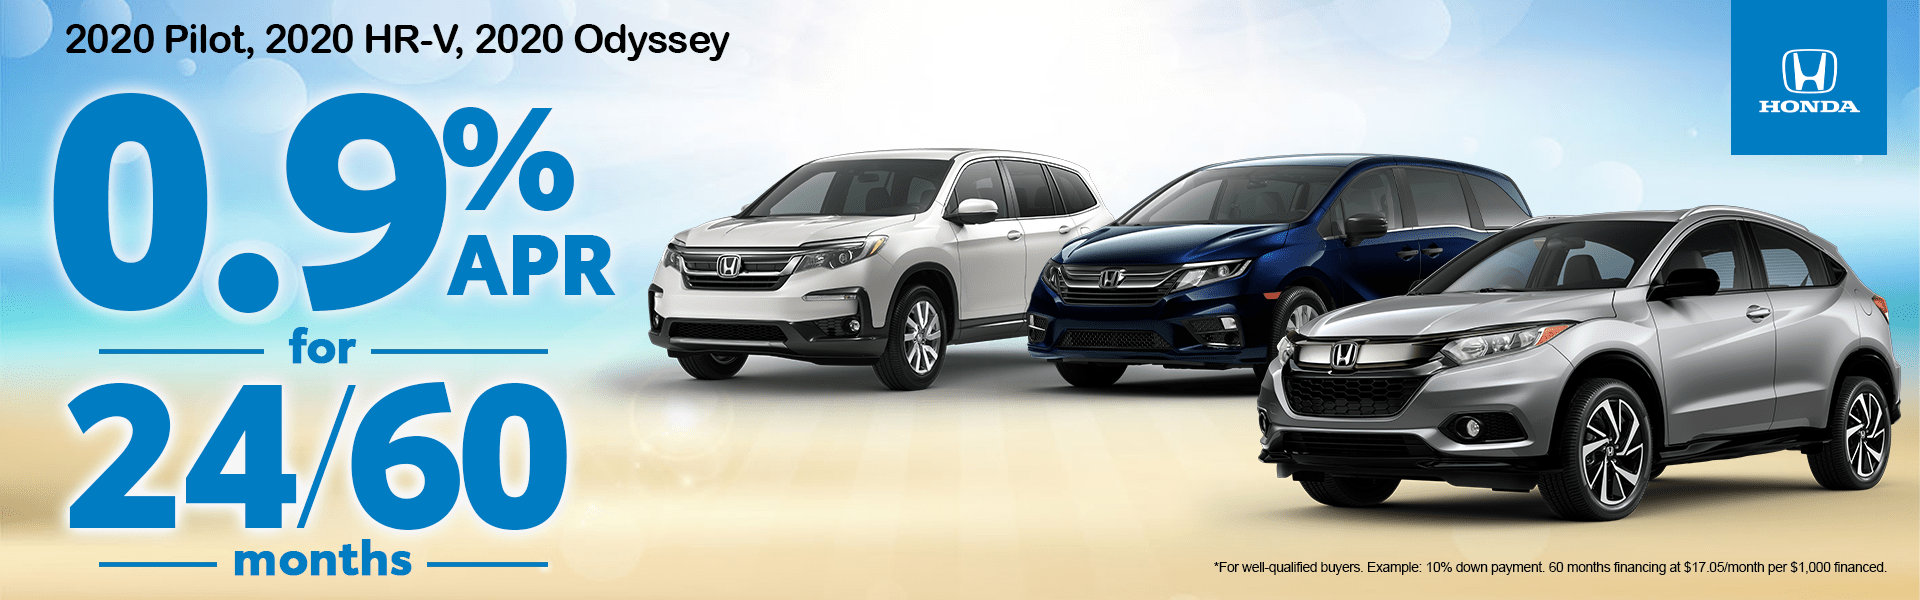 0.9% APR for 24/60 Months on a 2020 Pilot, 2020 HR-V, 2020 Odyssey